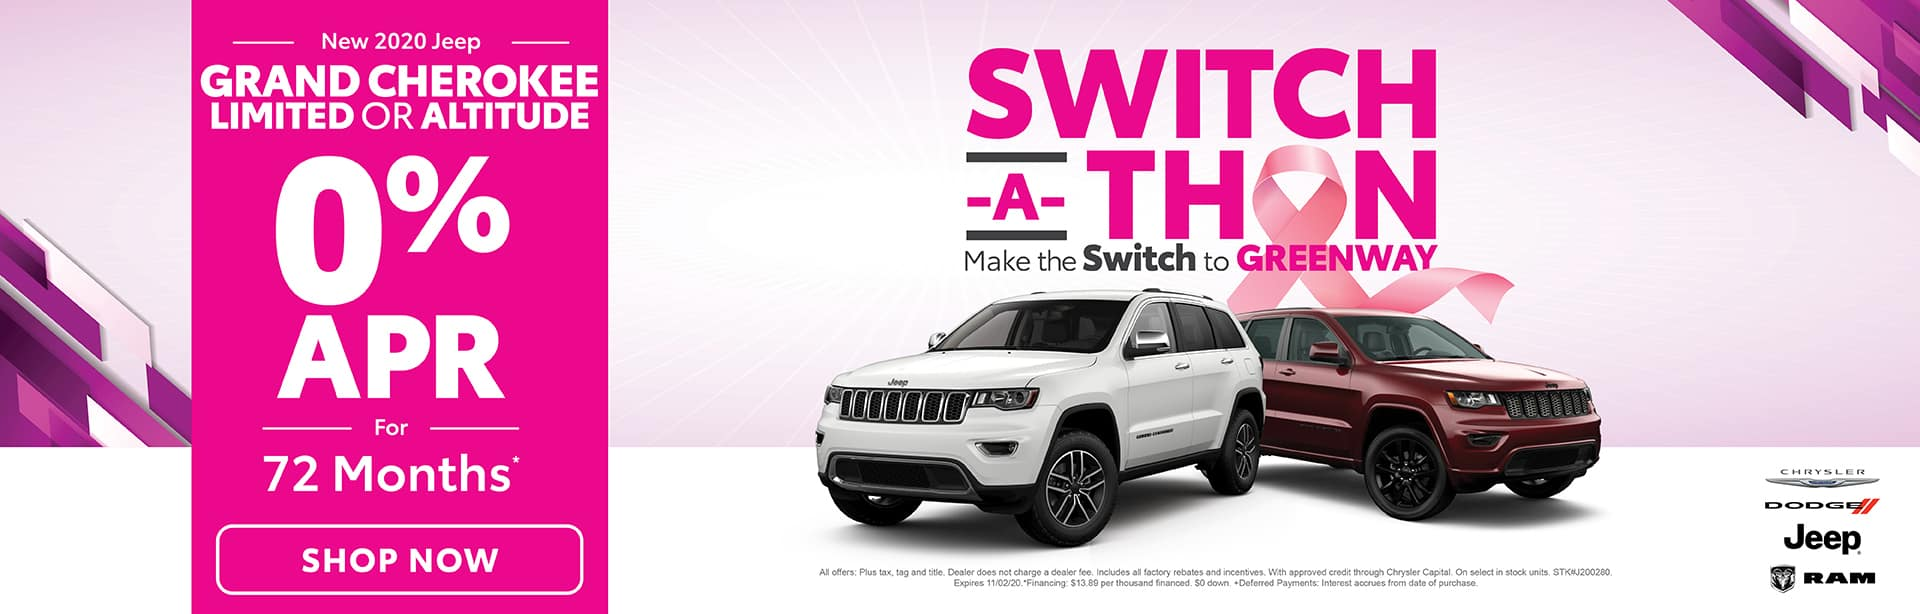 Switch-A-Thon - Grand Cherokee